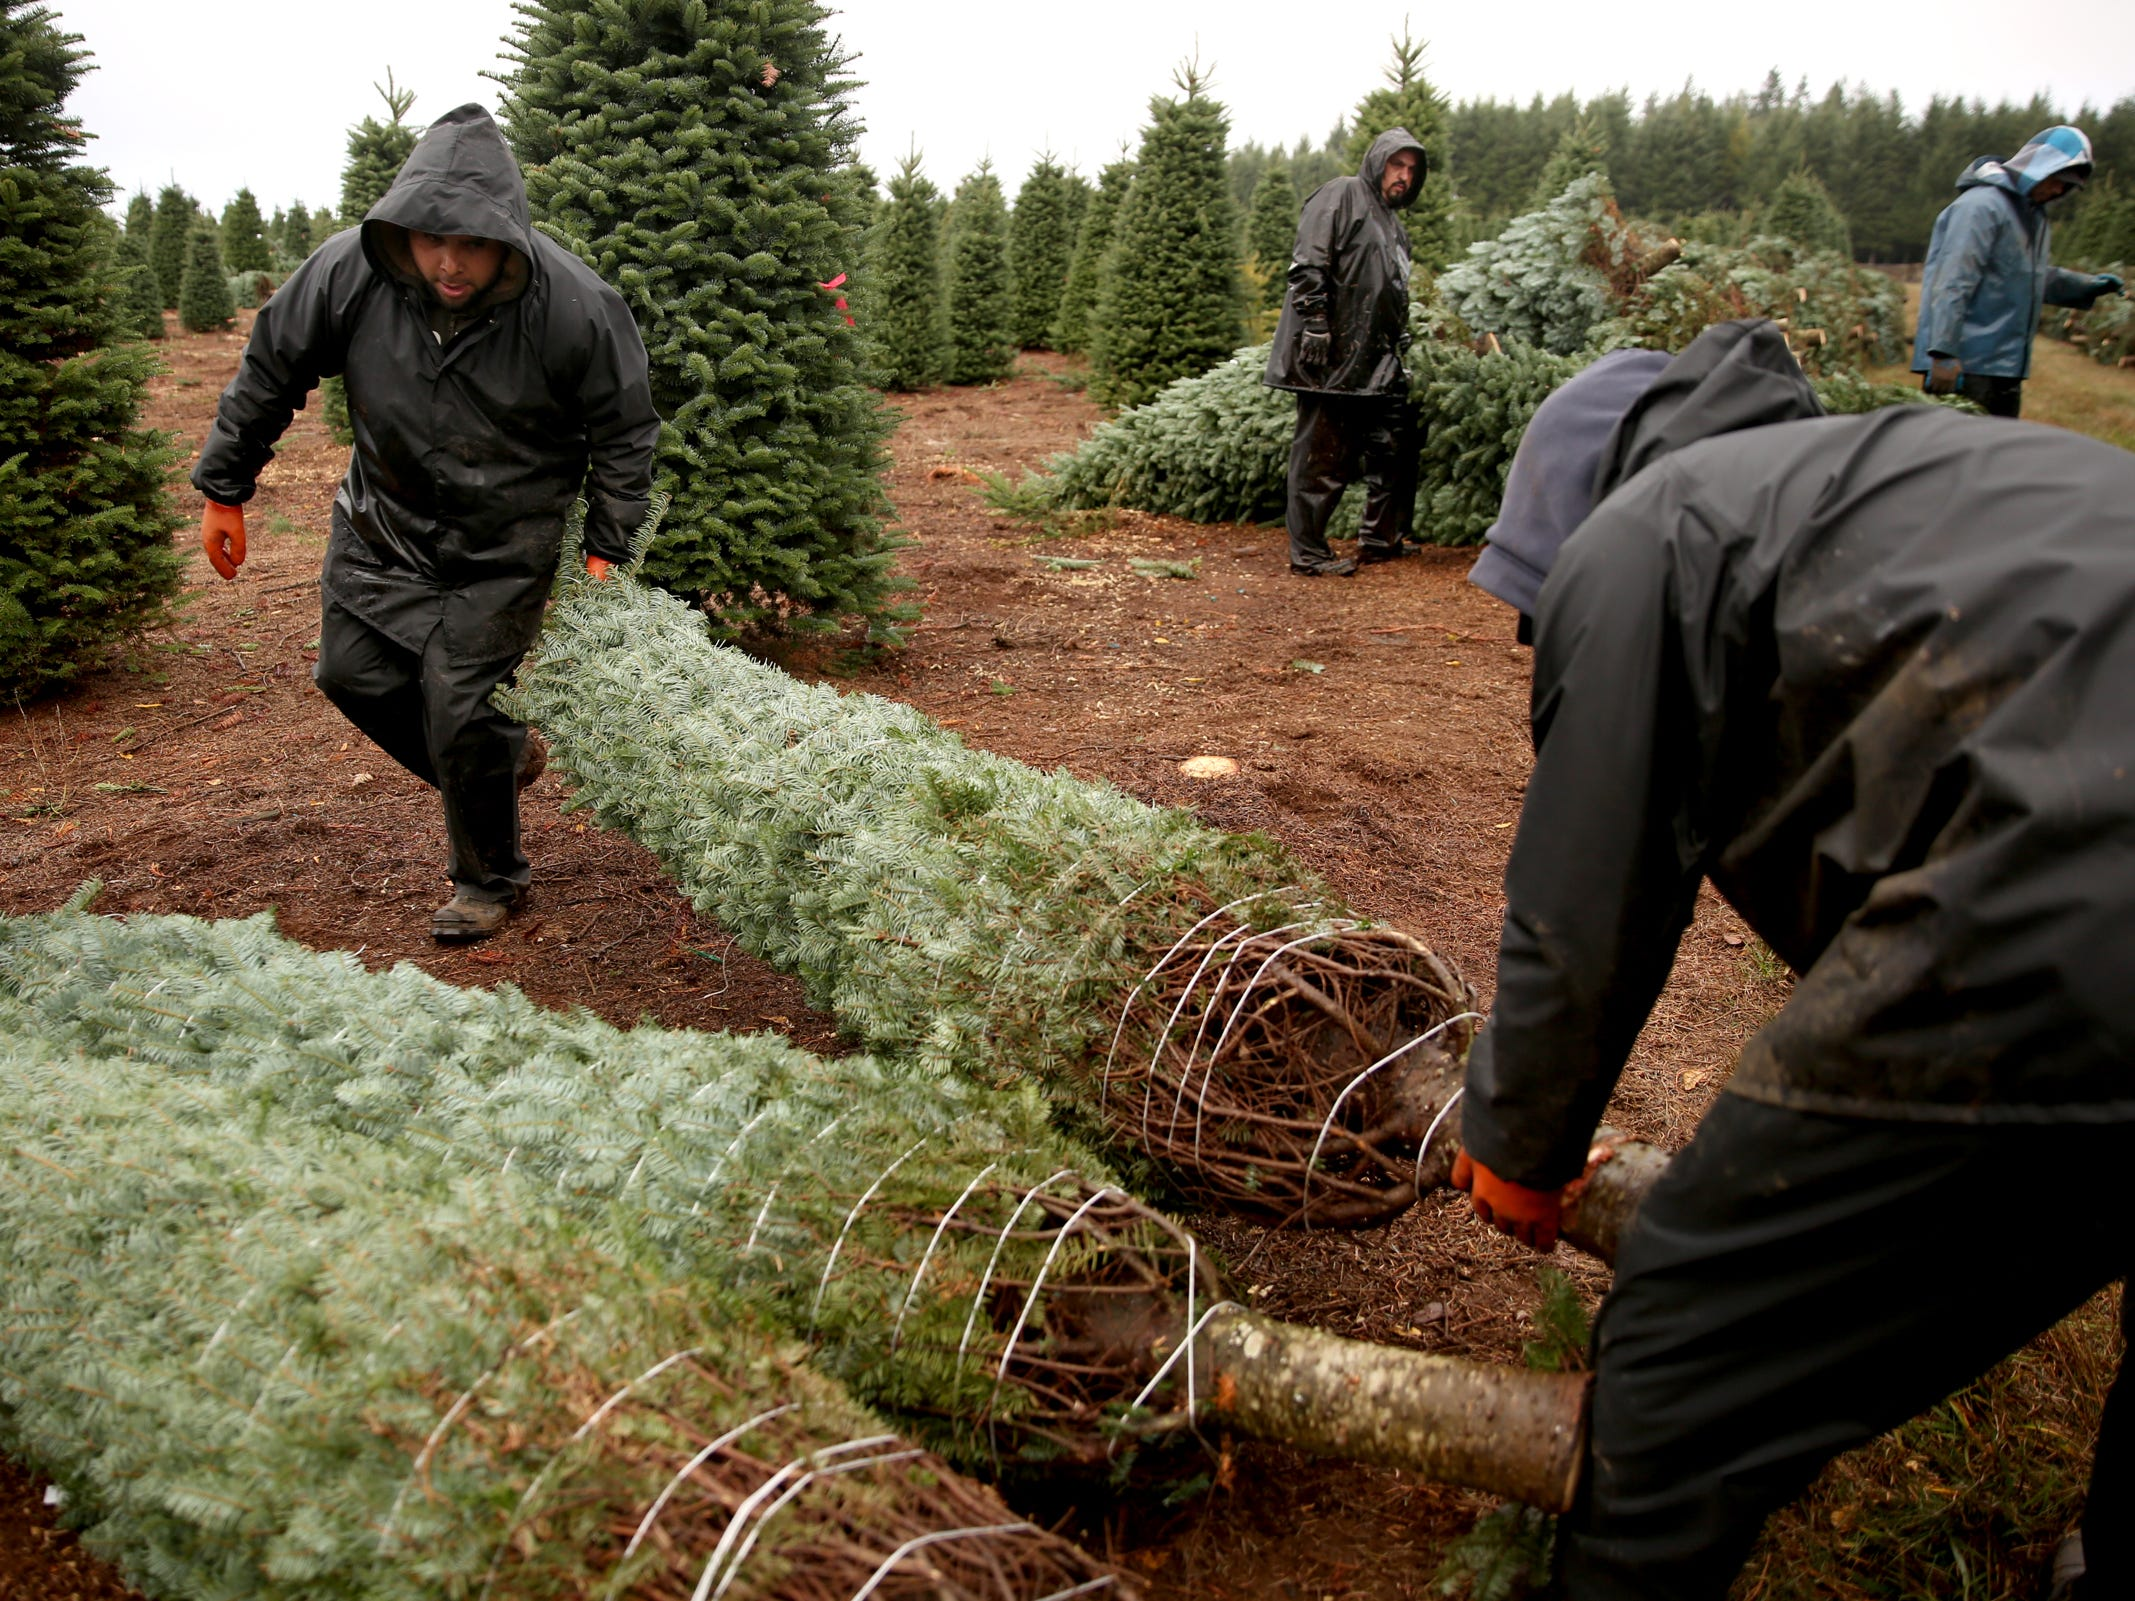 Christmas trees are harvested and prepped for delivery at Hupp Farms near Silverton on Monday, Nov. 5, 2018.